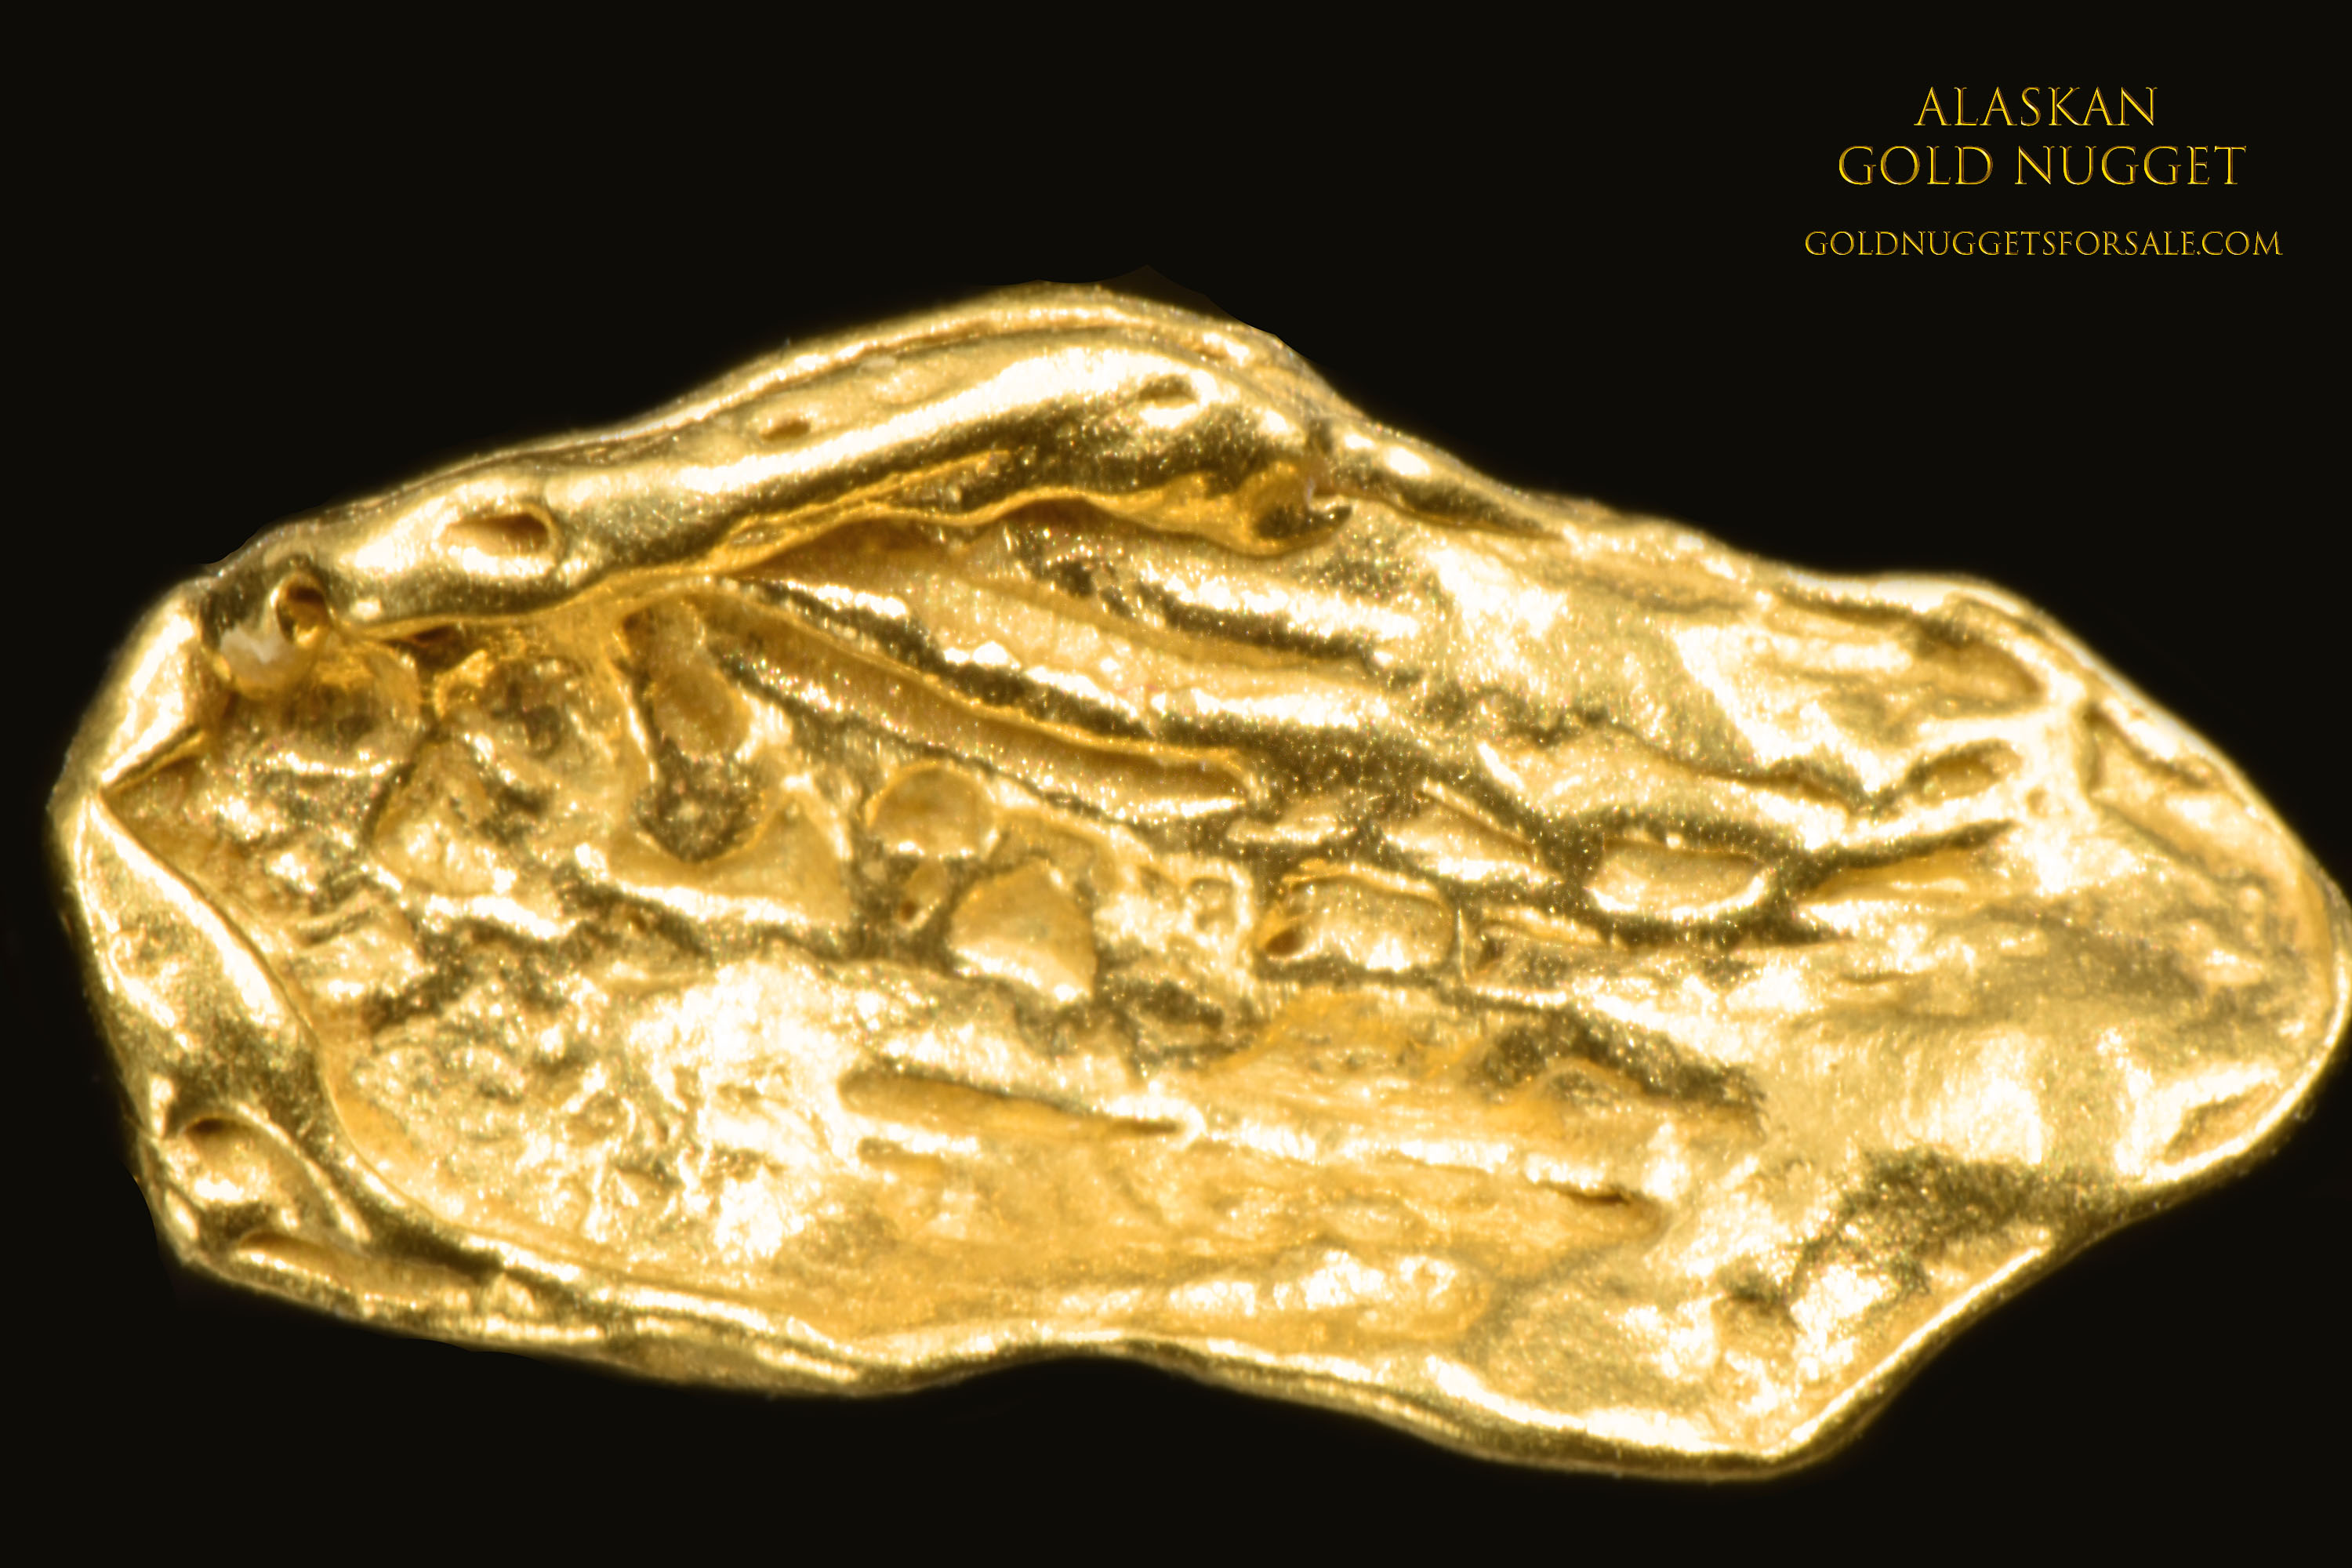 Thin and Shiny Jewelry Grade Alaskan Gold Nugget